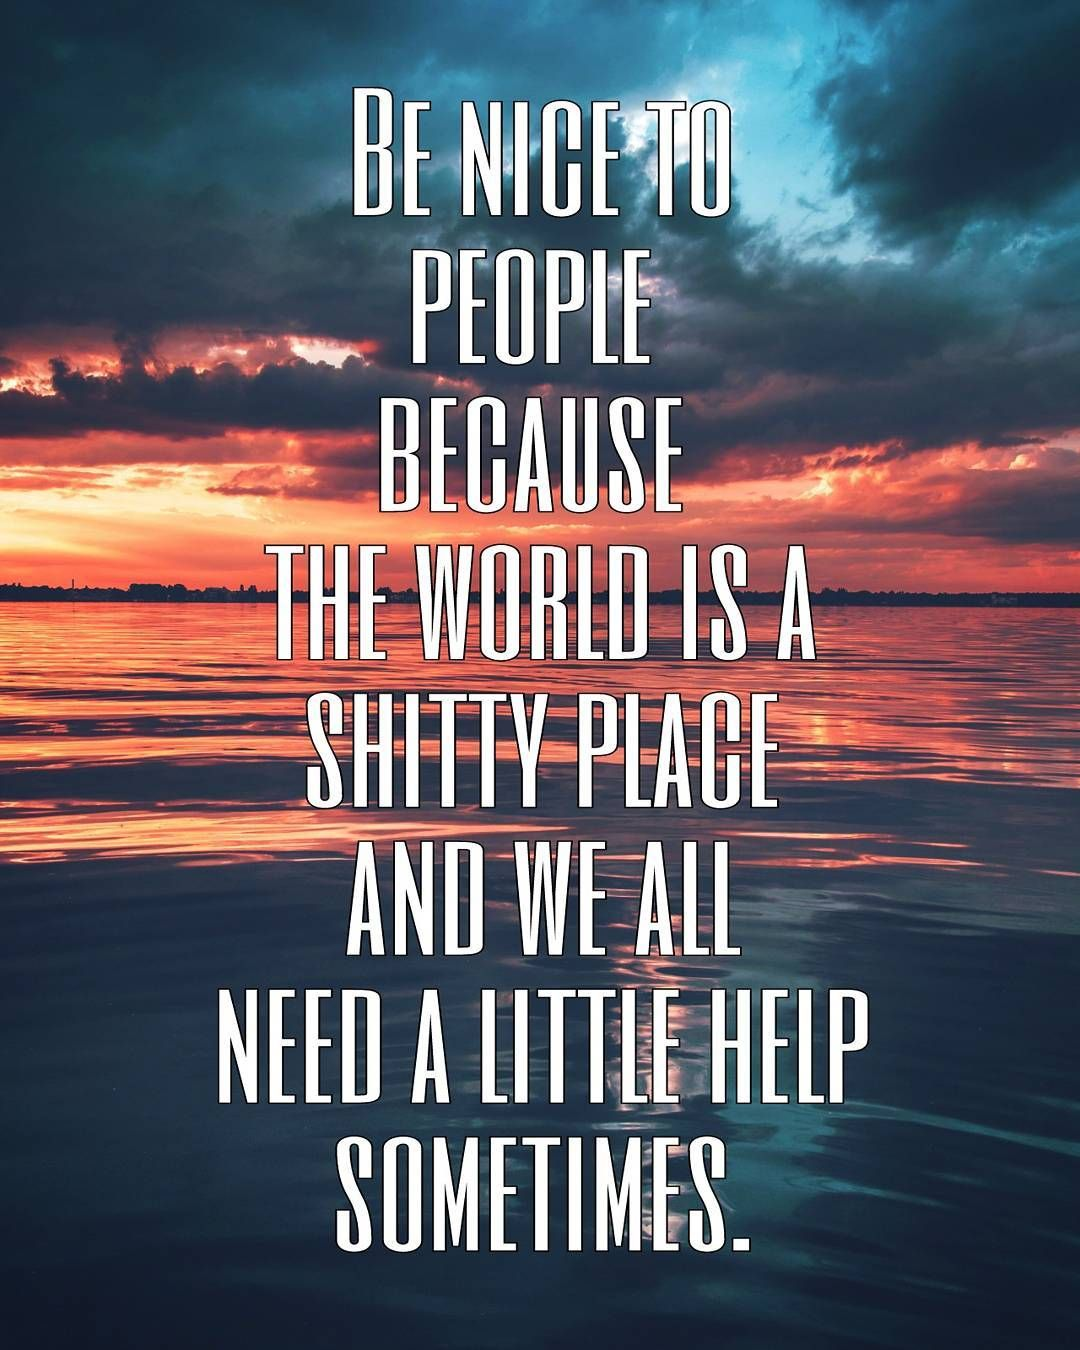 Positive Quotes About Love Quotted_City Benice Shityy Help Leadership Positive Quotes